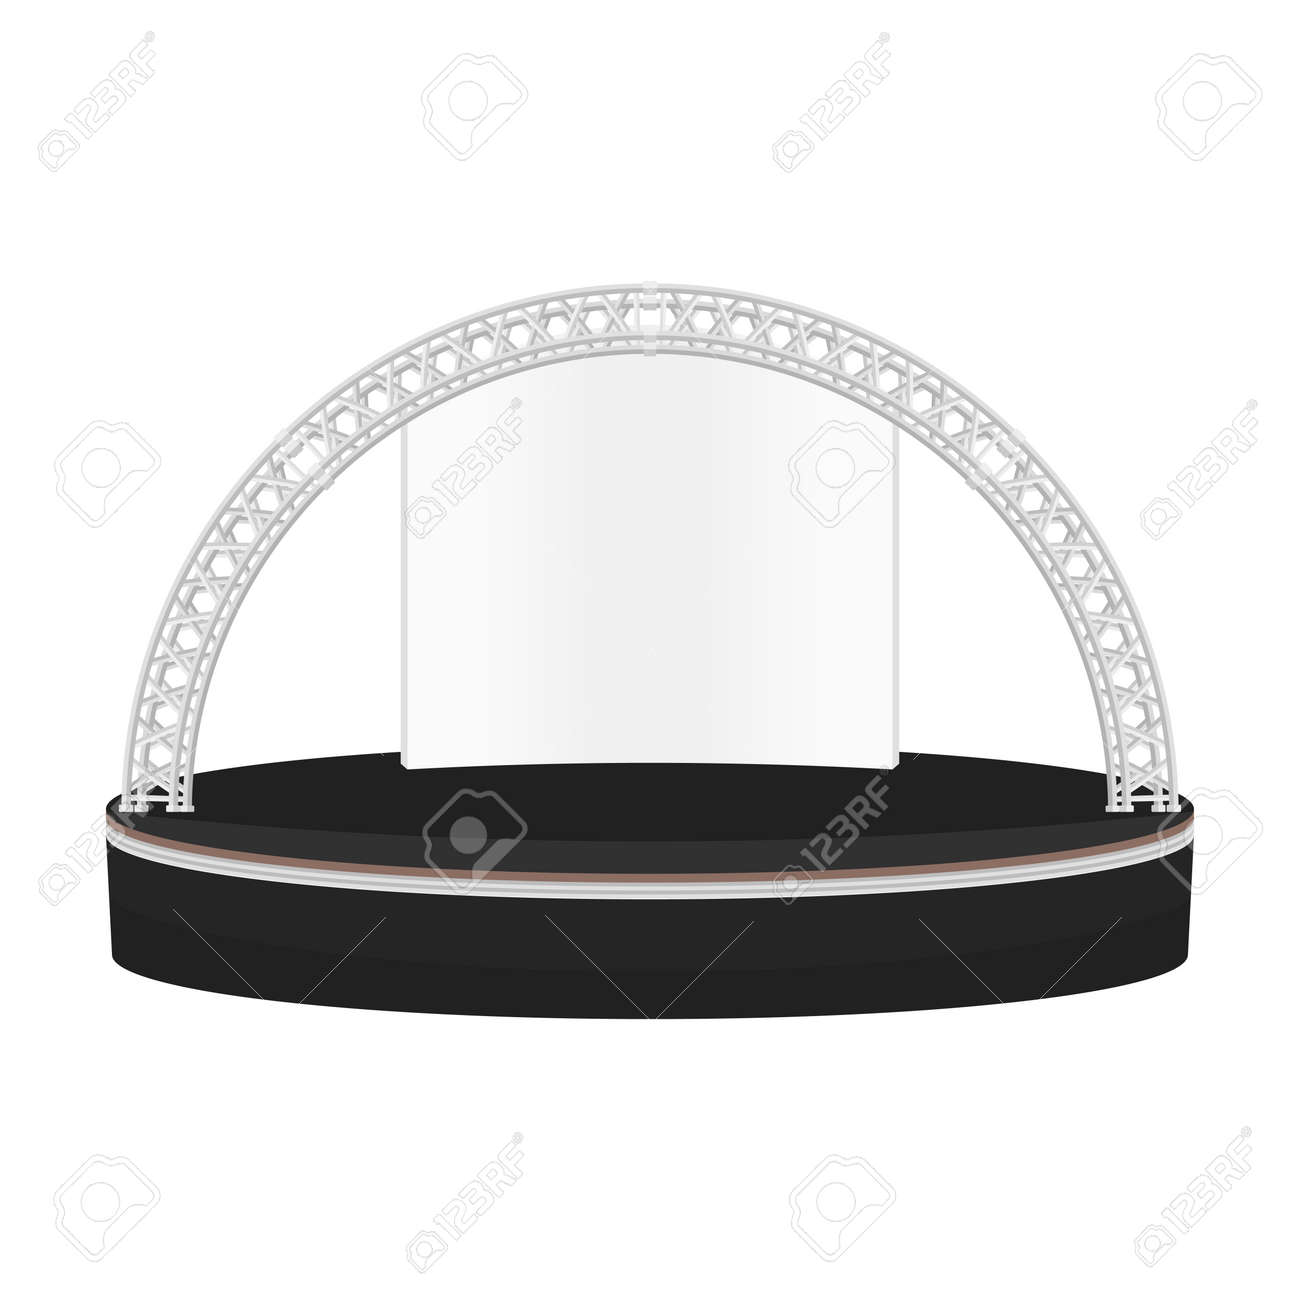 Empty outdoor rock stage - Outdoor Stage Vector Black Color Flat Design Estrade Rounded Stage Metal Truss With Empty White